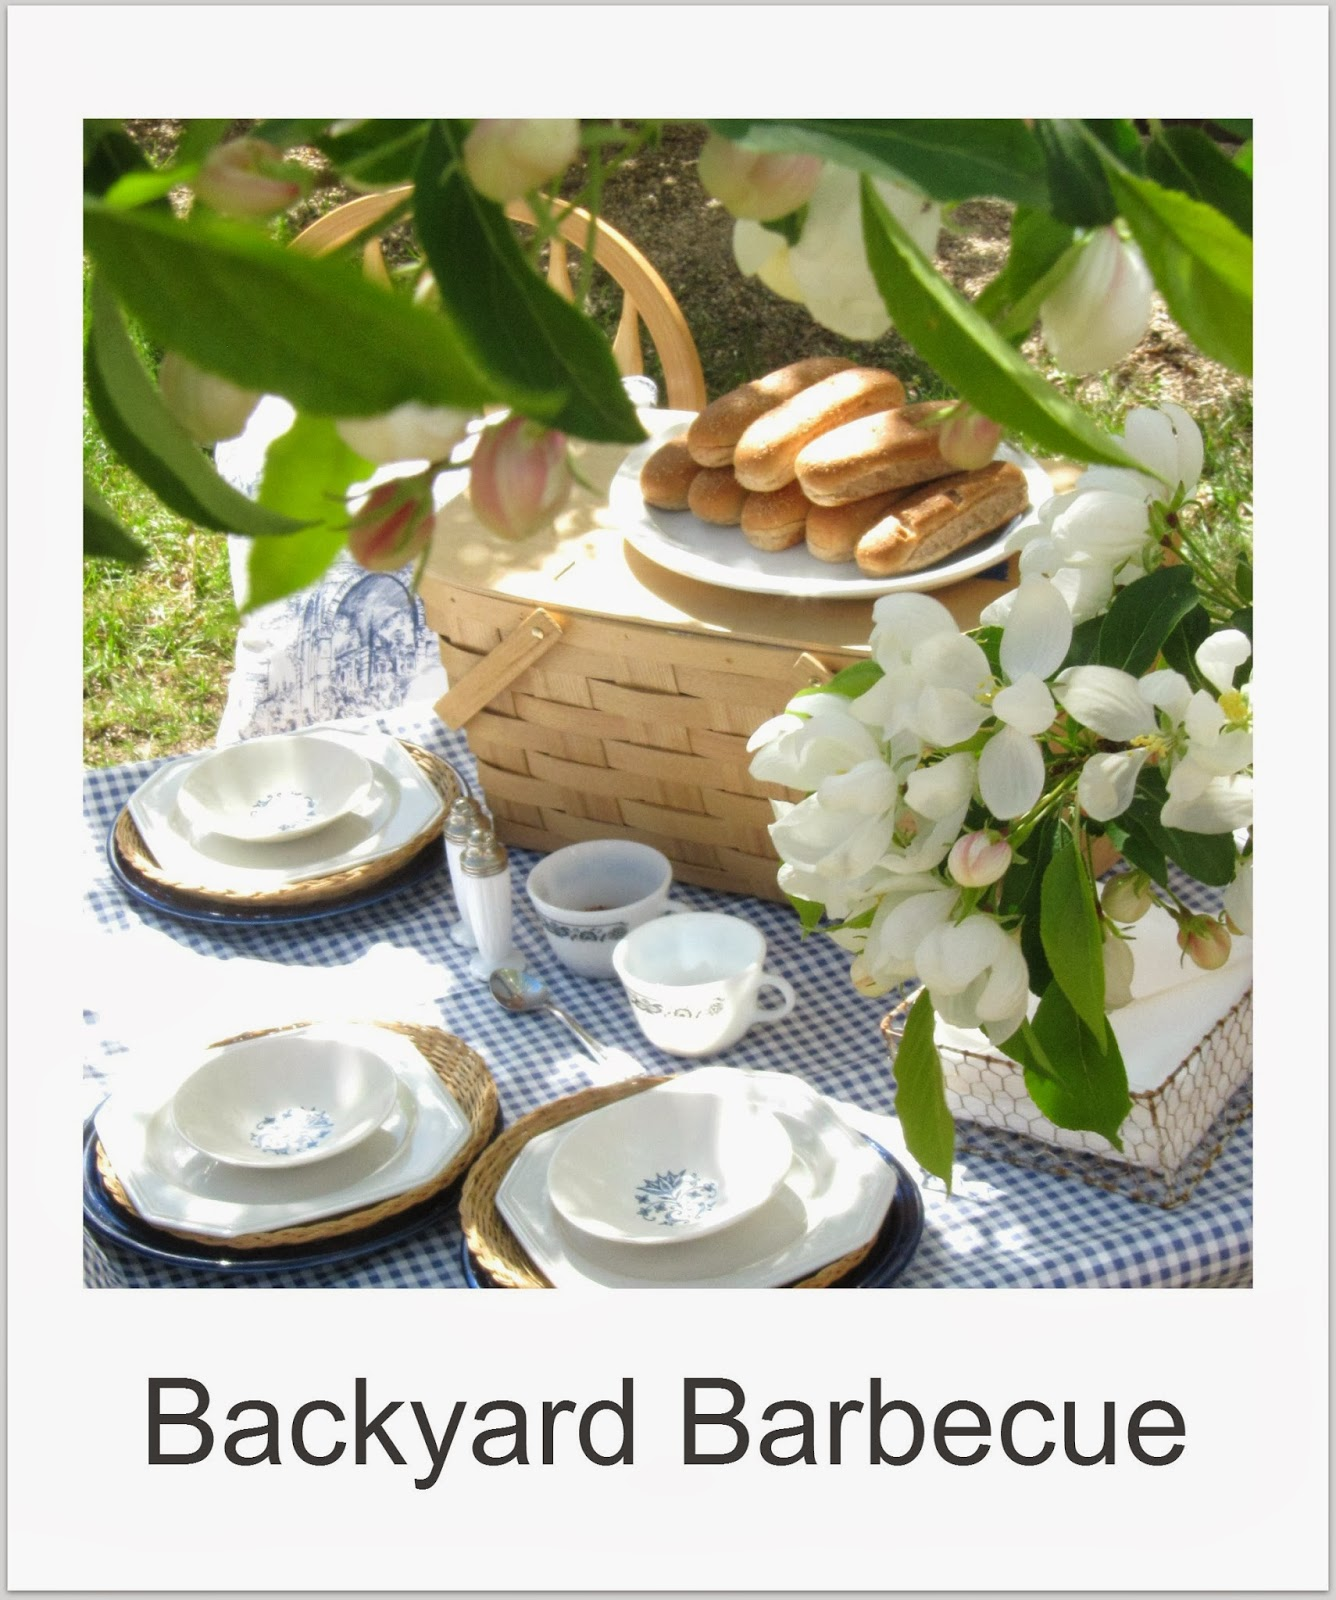 http://thewickerhouse.blogspot.com/2013/04/backyard-barbecue.html